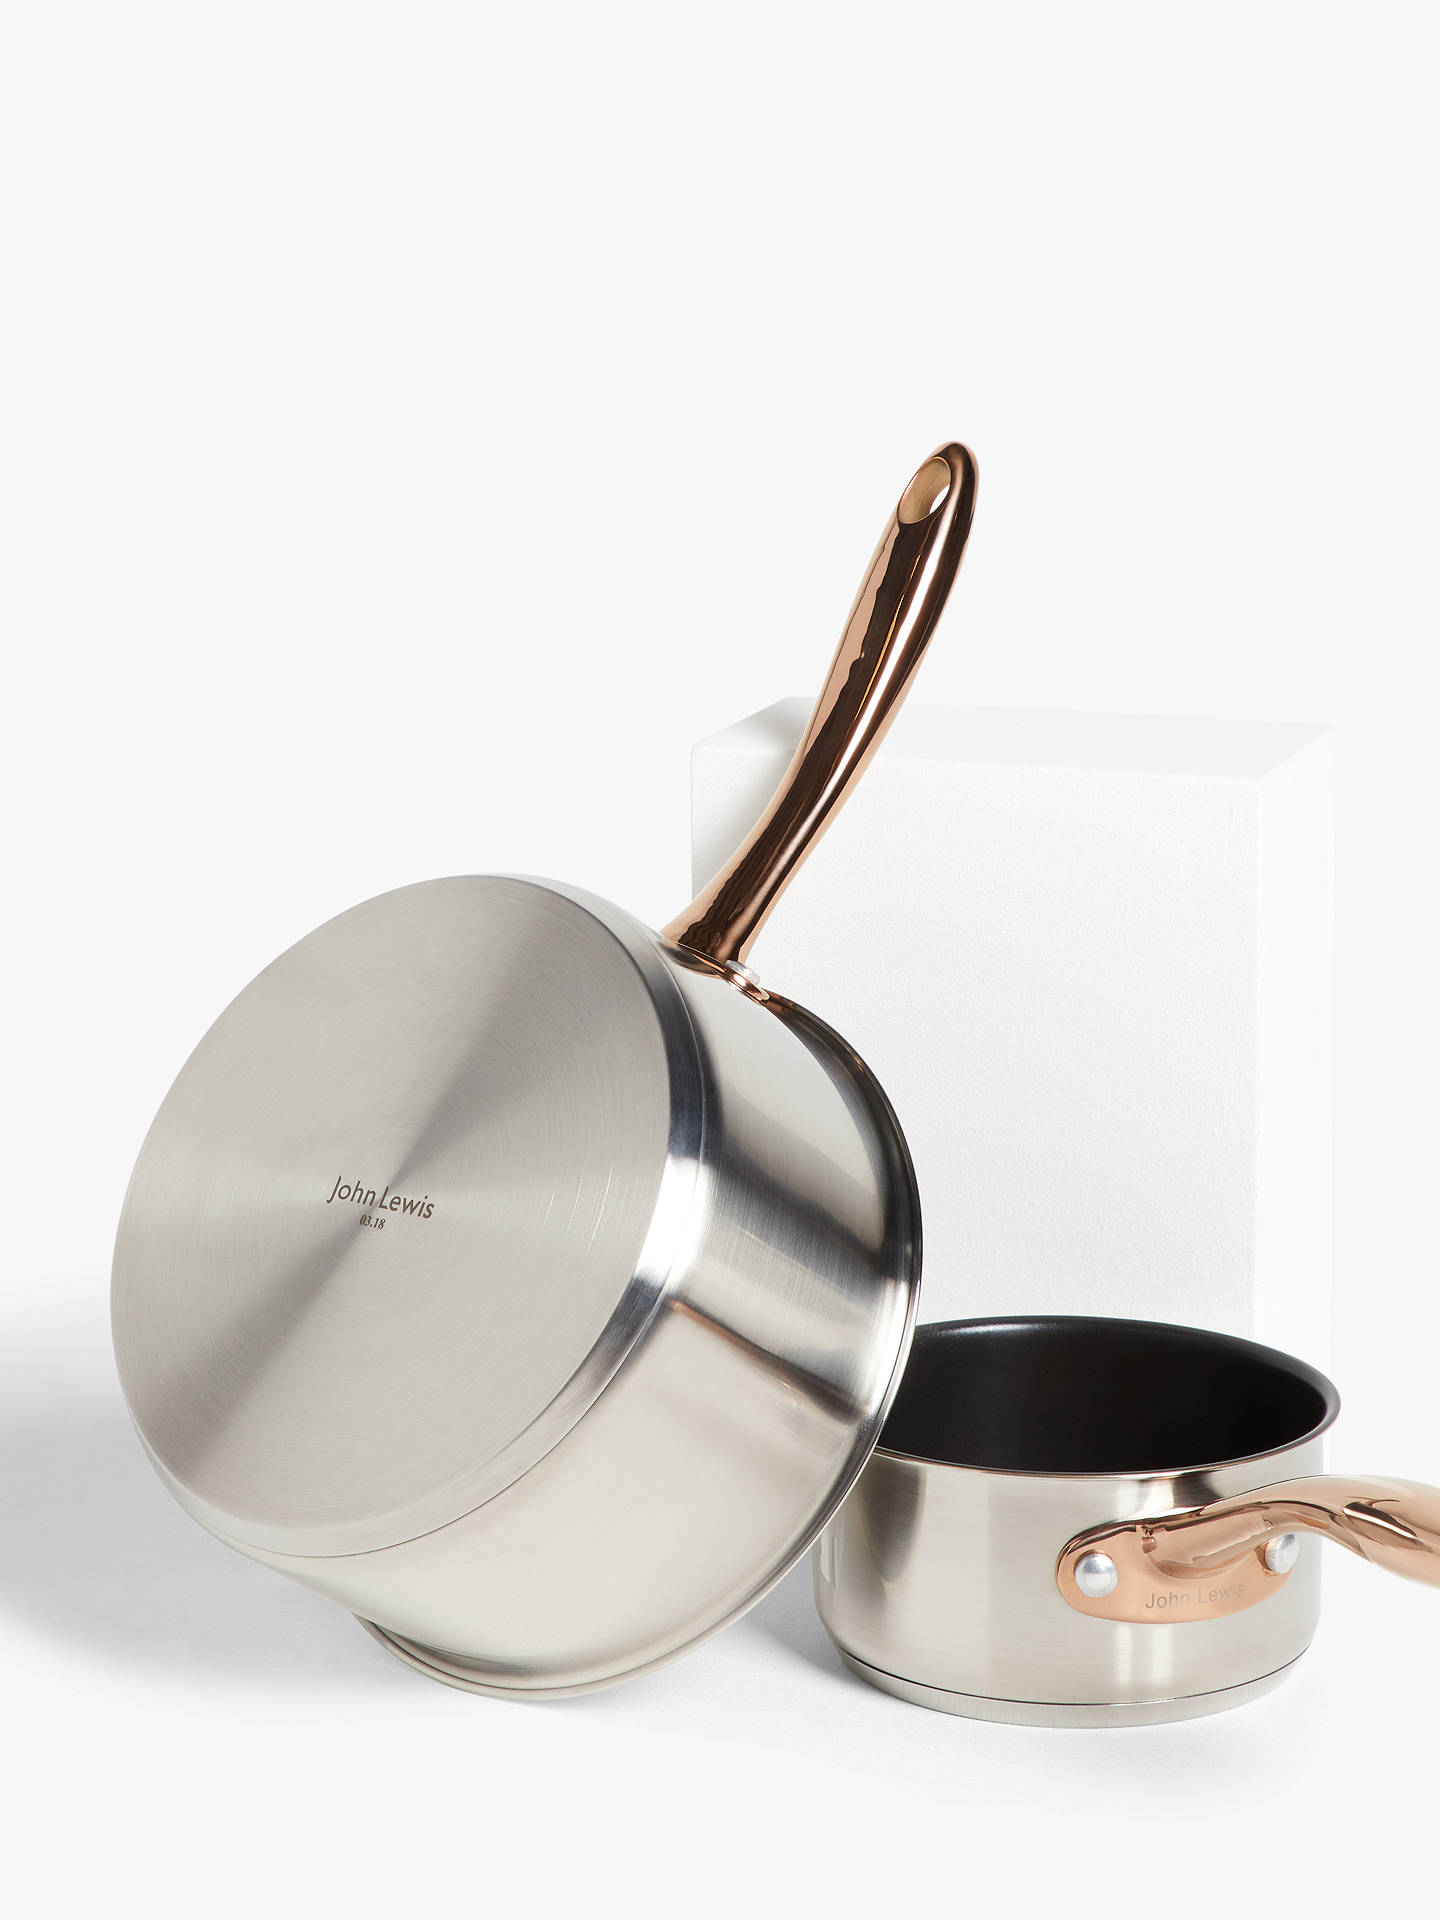 Buy John Lewis & Partners Copper Features Pan Set, 5 Piece Online at johnlewis.com